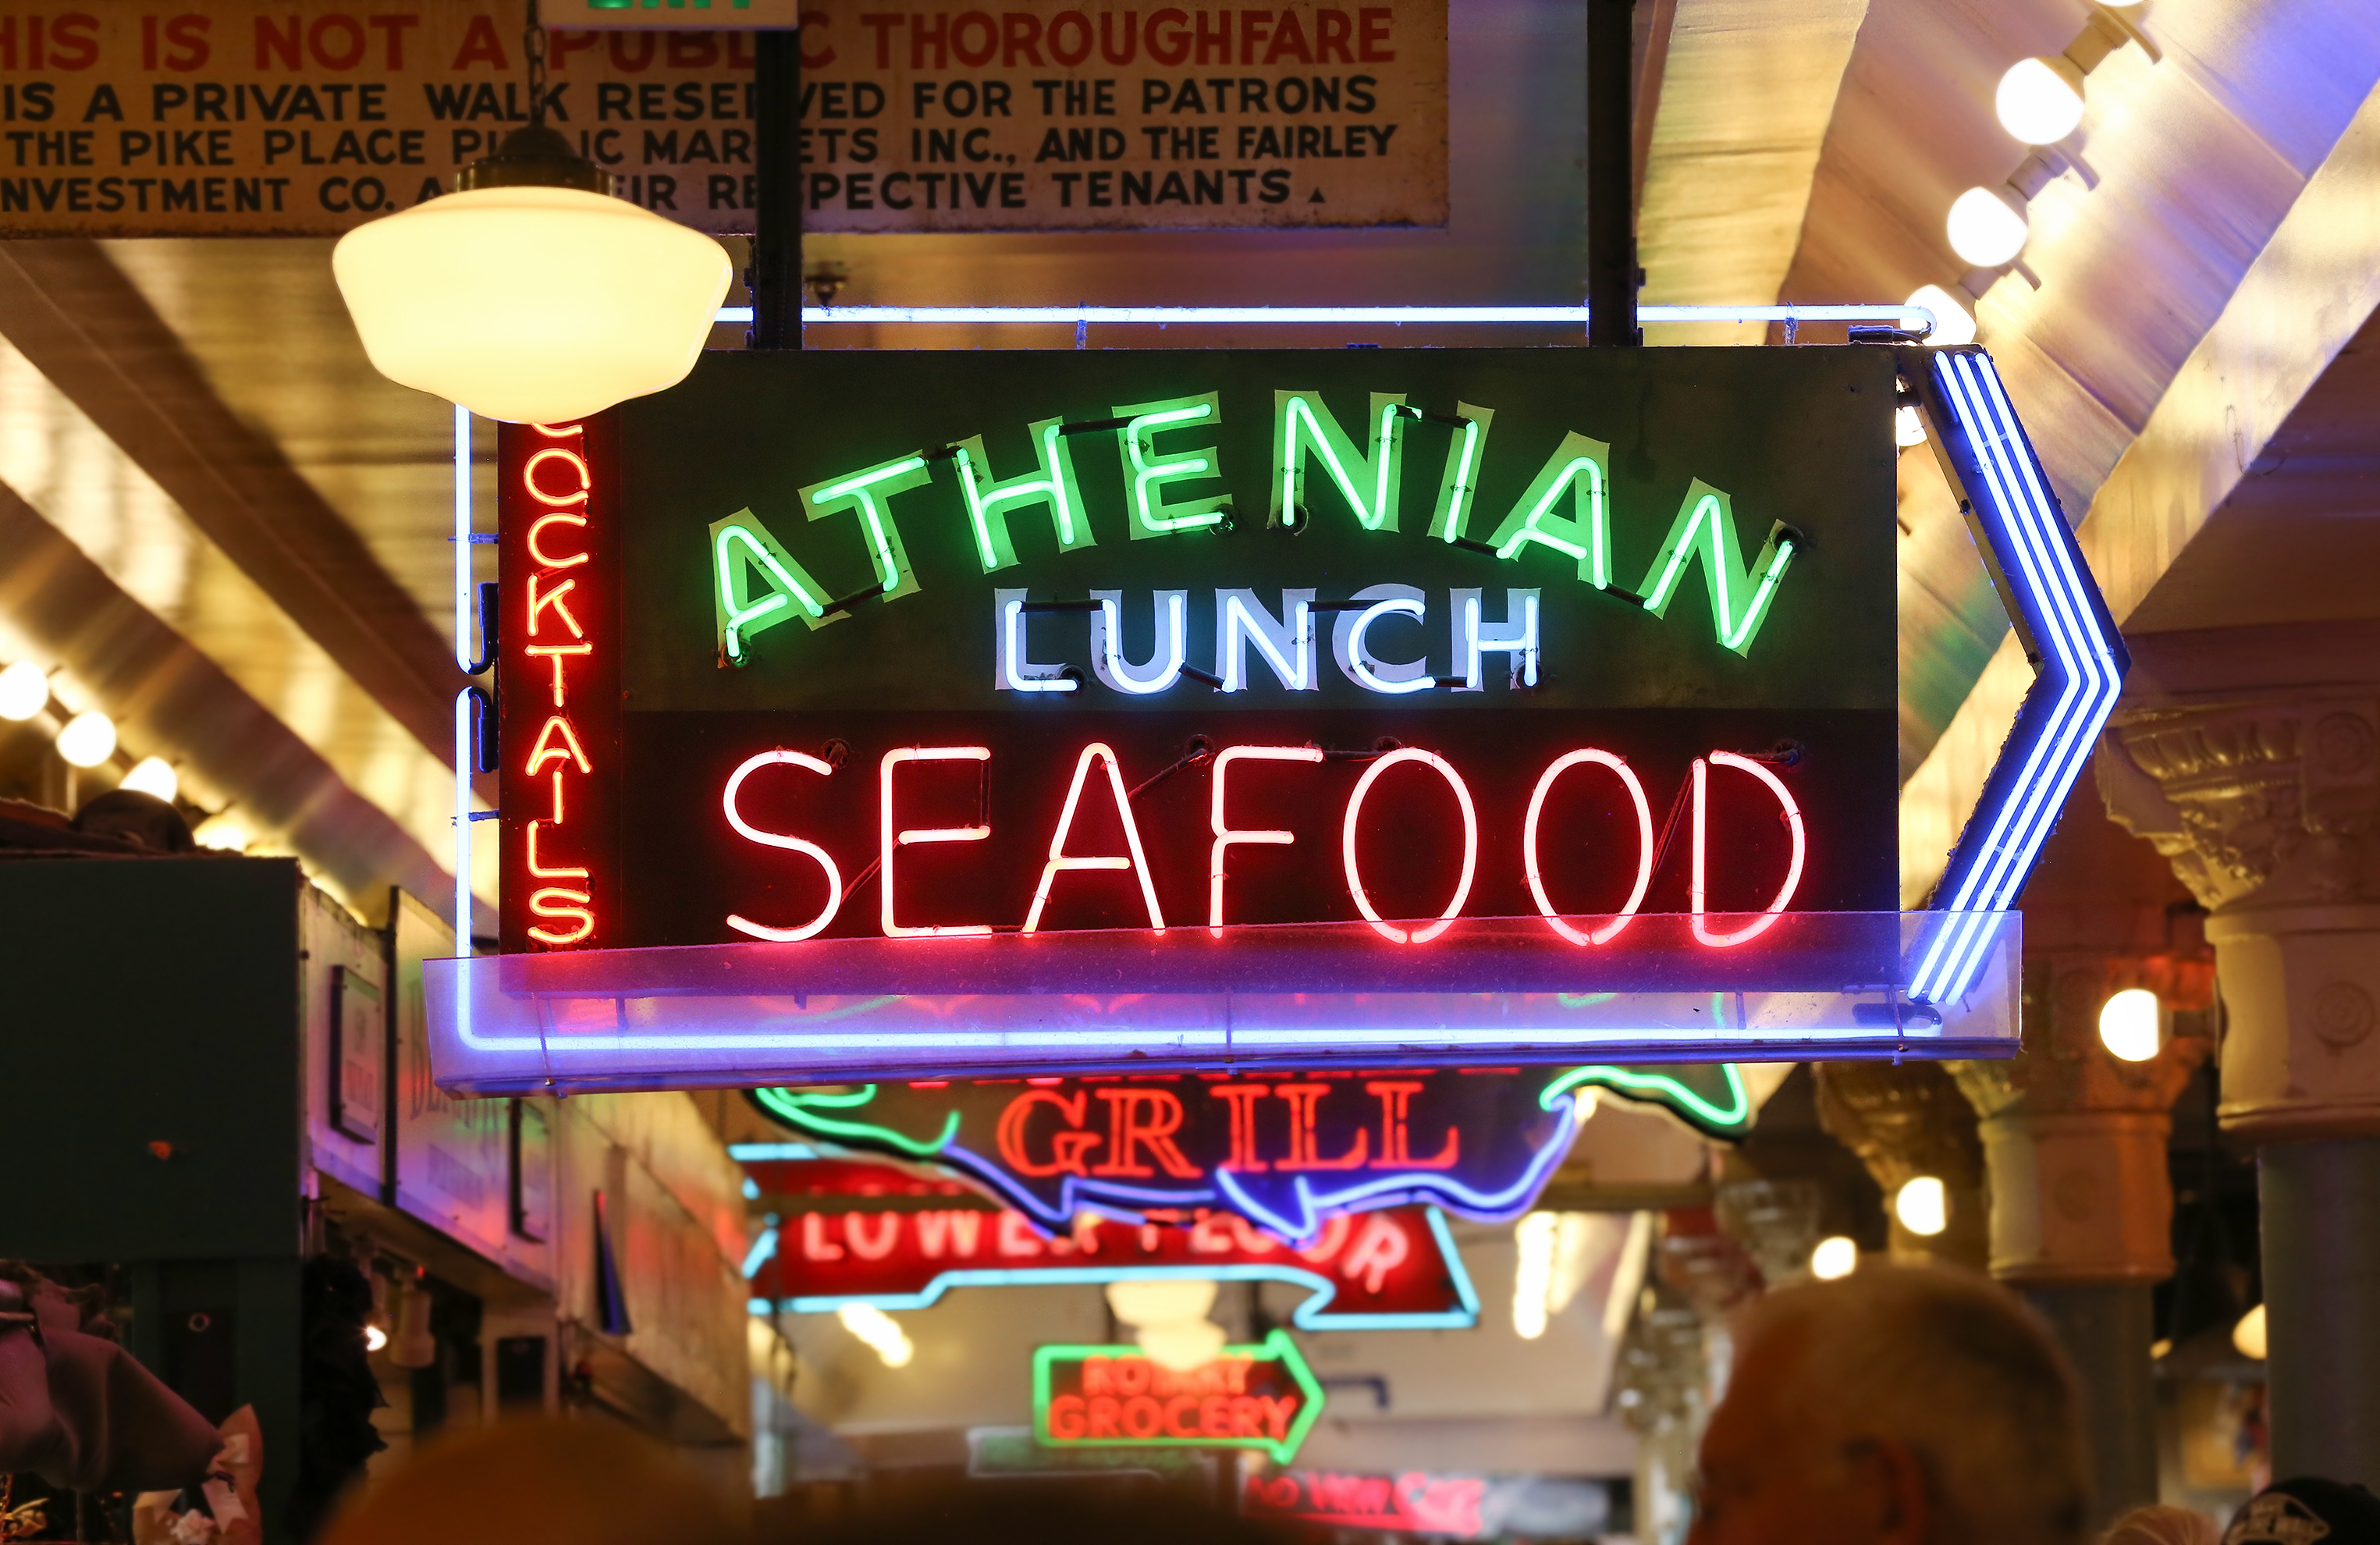 A neon sign that reads: Athenian Lunch Seafood Grill.